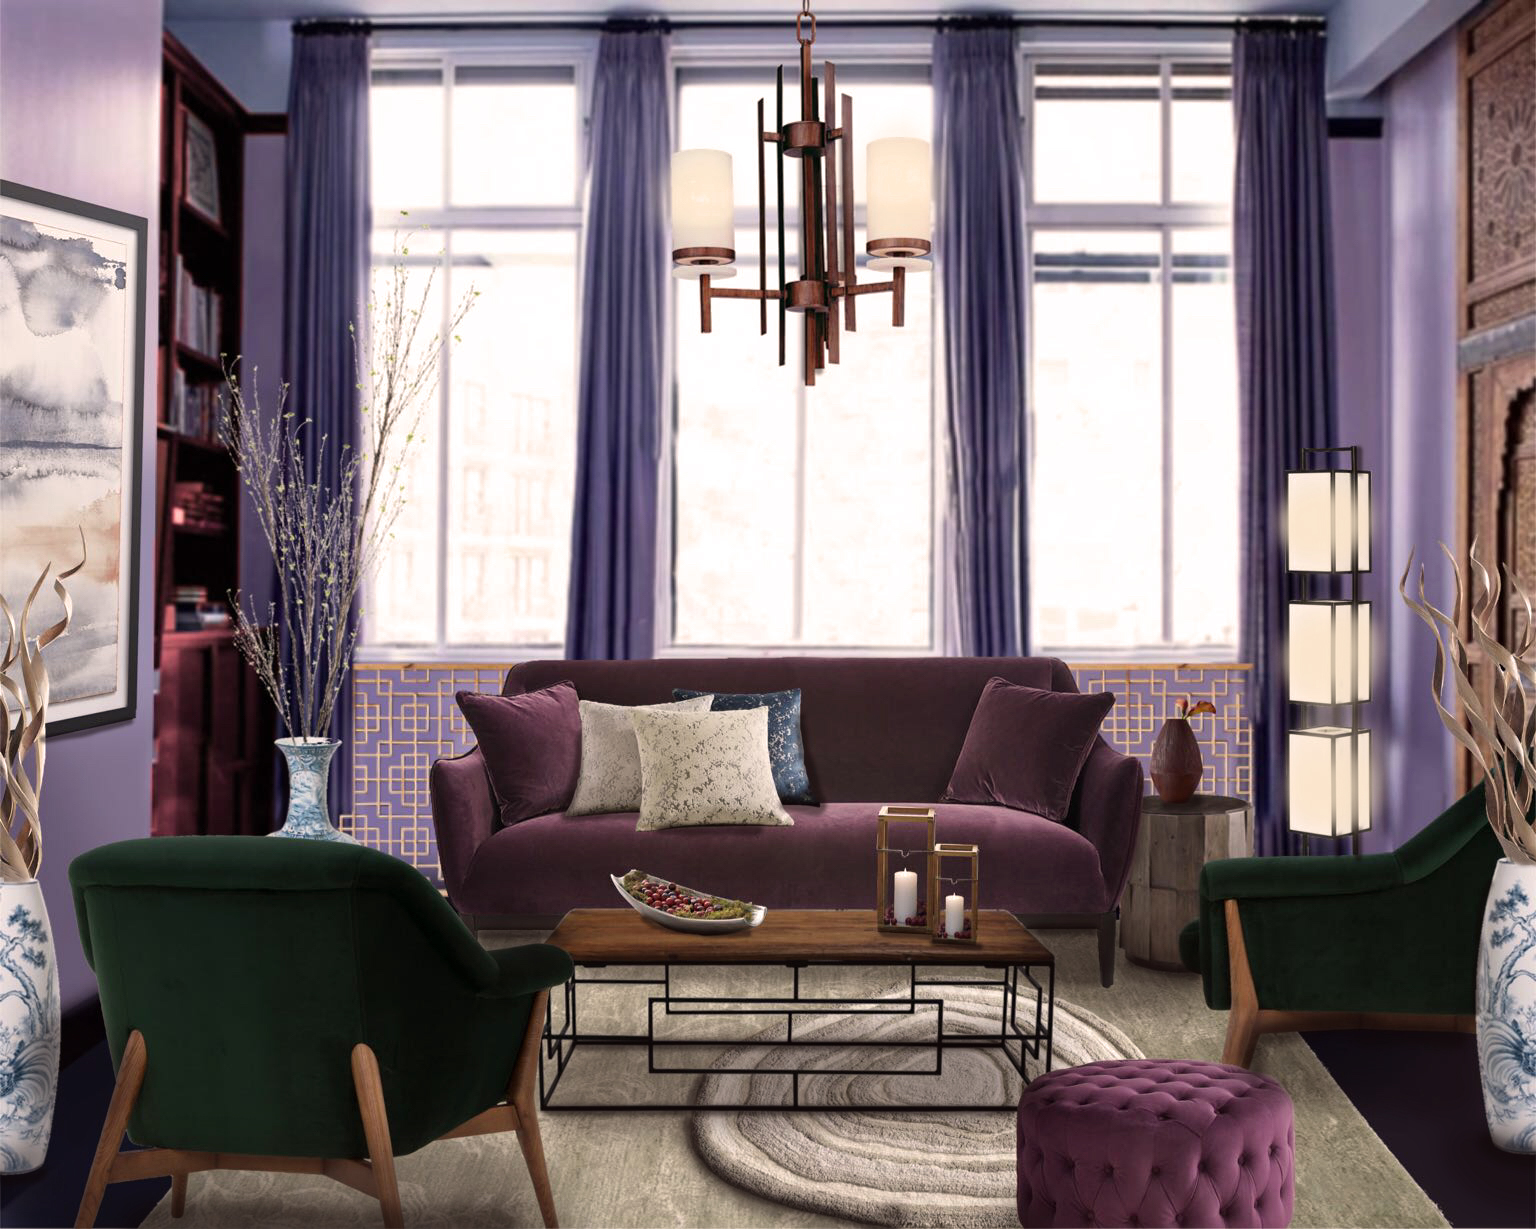 The color of 2018 - Ultra violet: living room design from interior designers using decor matters - AR Home Design App